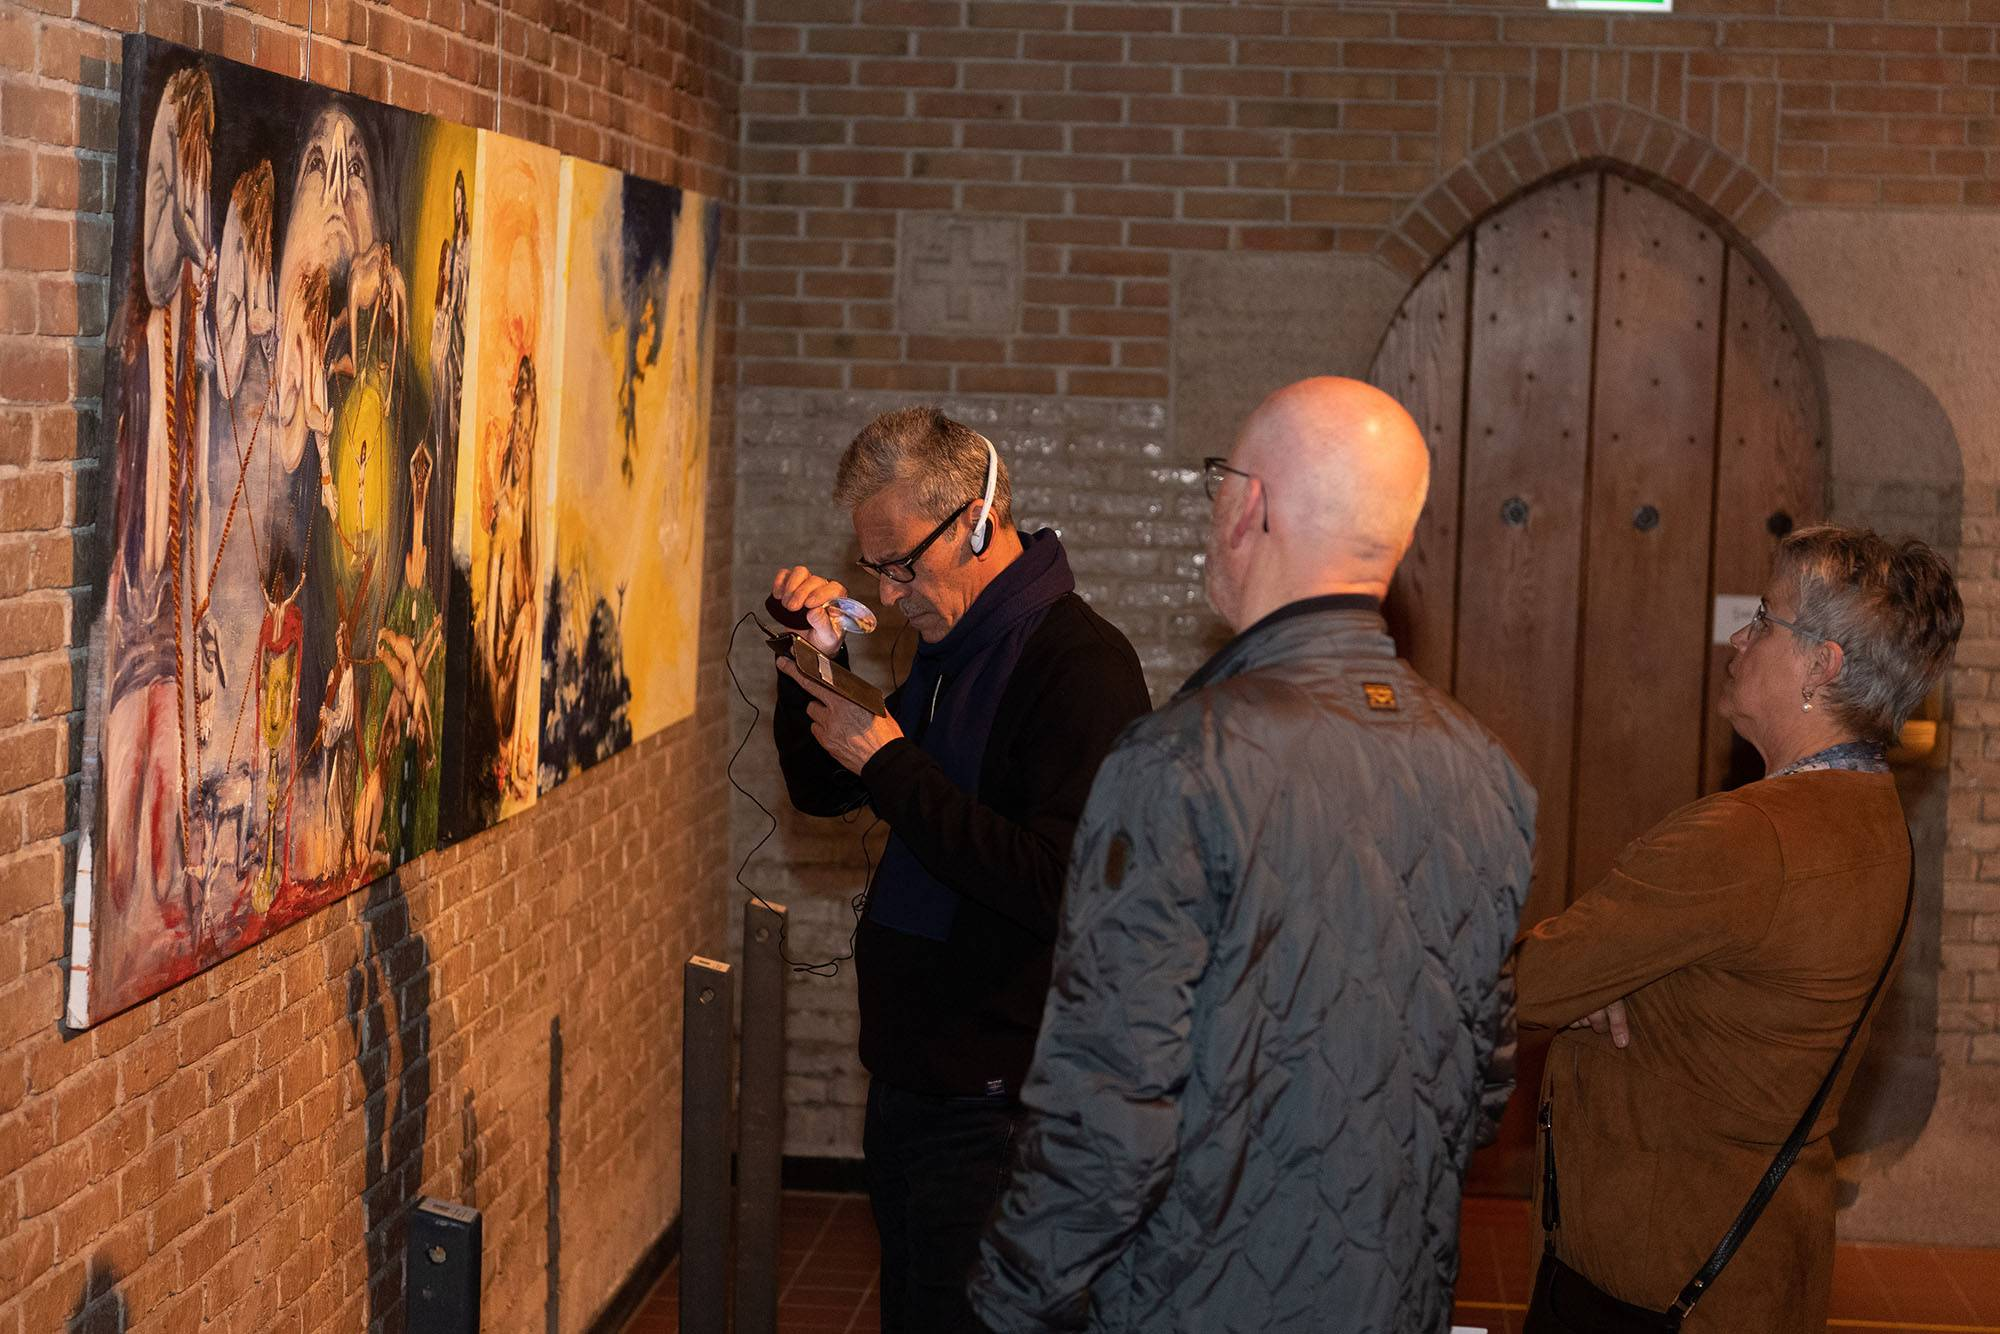 Impression exhibition First see then believe in the Mariengaarde chapel, by Jofke. For an exact description of this picture you can mail to kunst@jofke.nl